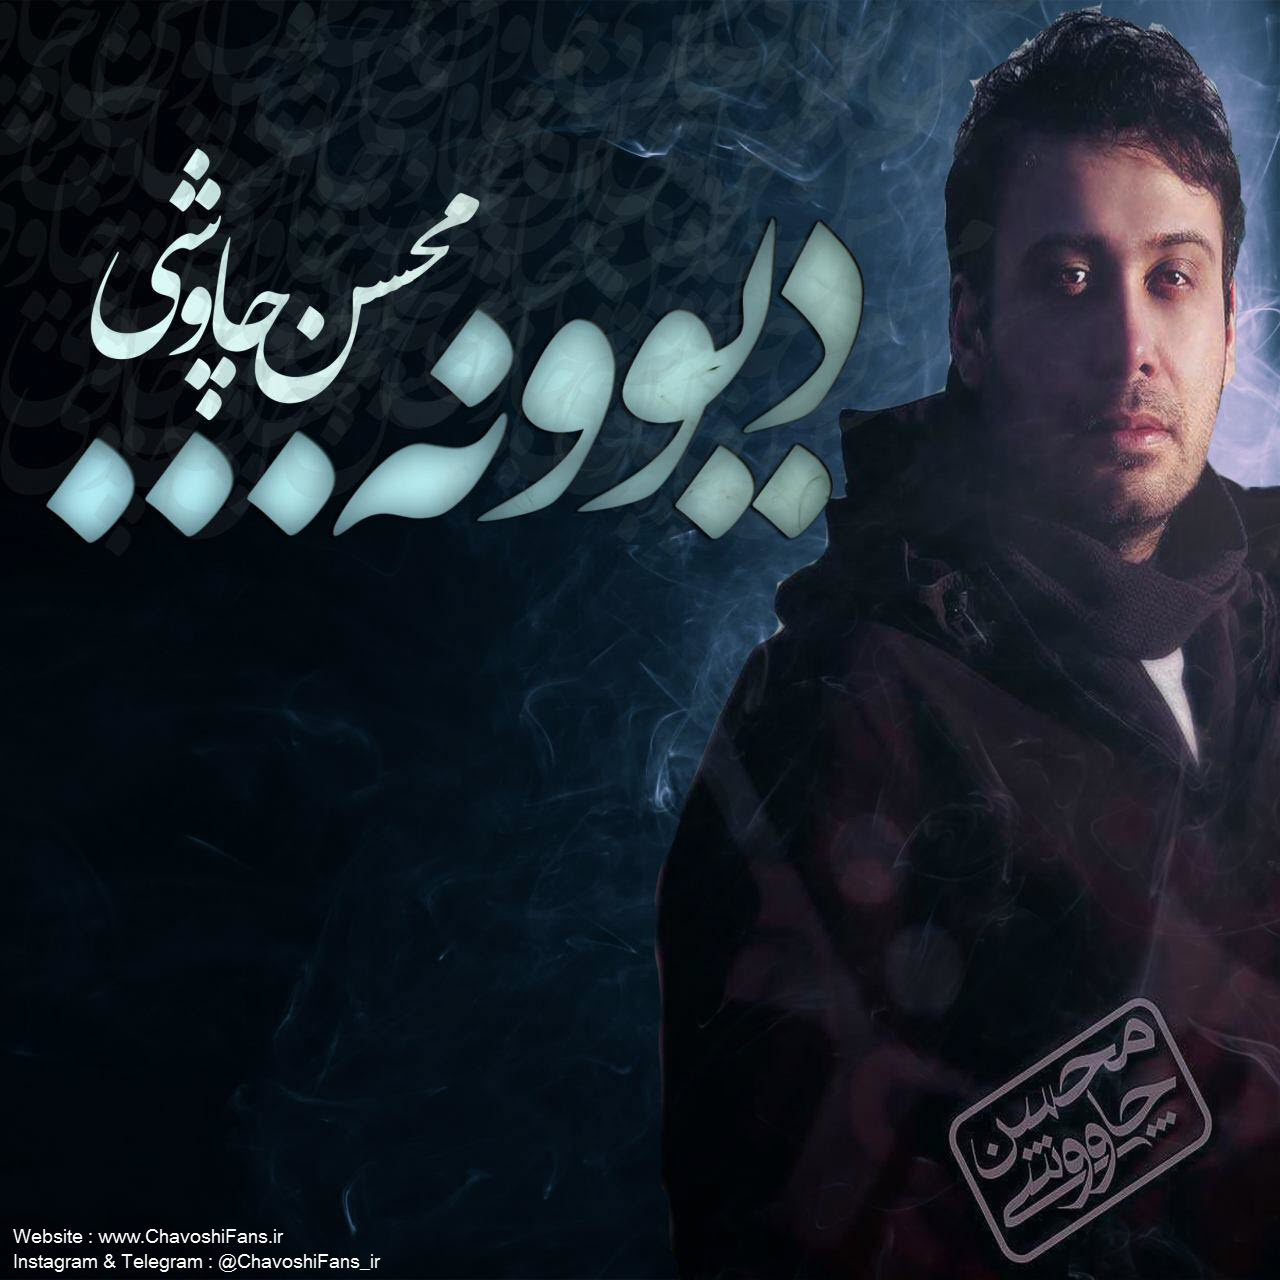 http://www.chavoshifans.ir/wp-content/uploads/2016/05/Mohsen-Chavoshi-Divooneh-www.ChavoshiFans.ir_.jpg